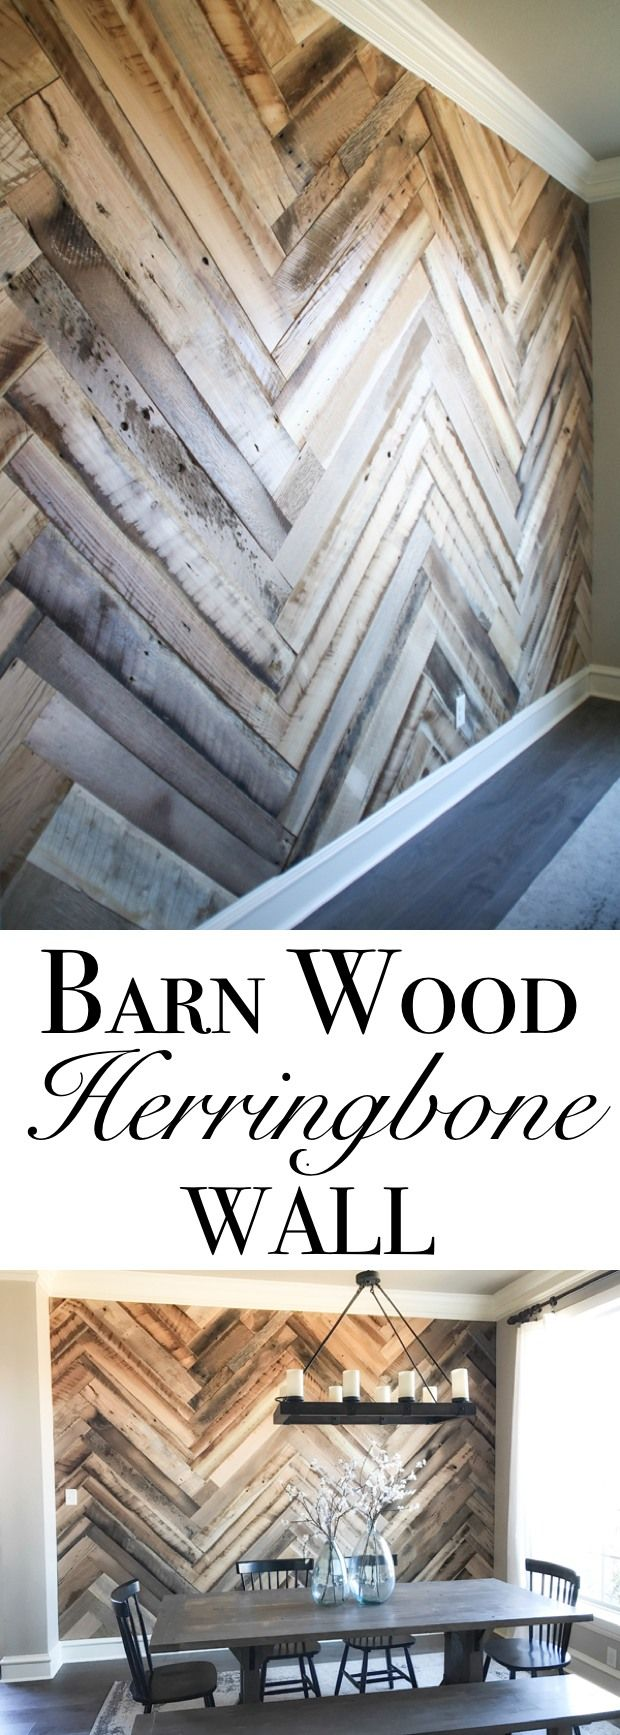 Barn Wood Herringbone Wall